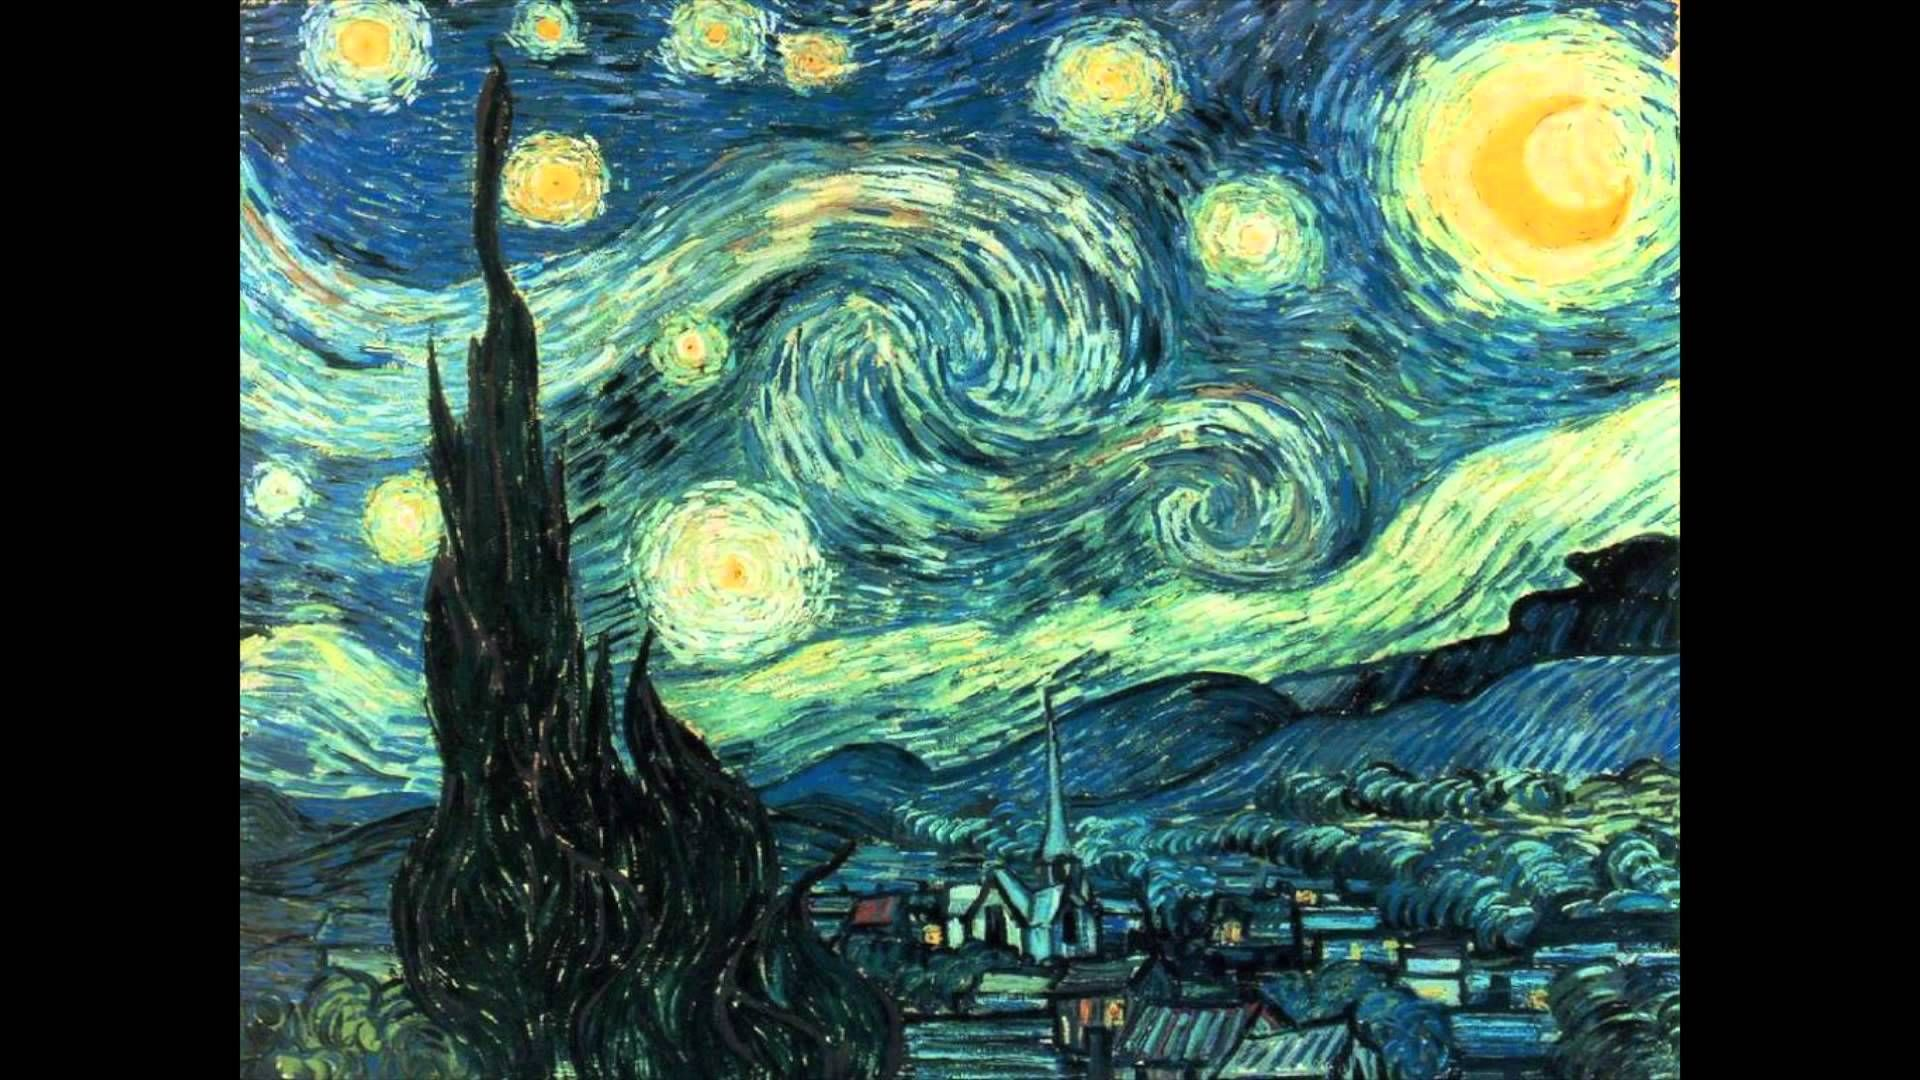 Art Pieces New Worlds Most Famous Paintings 1080p Hd 101new Pinterest